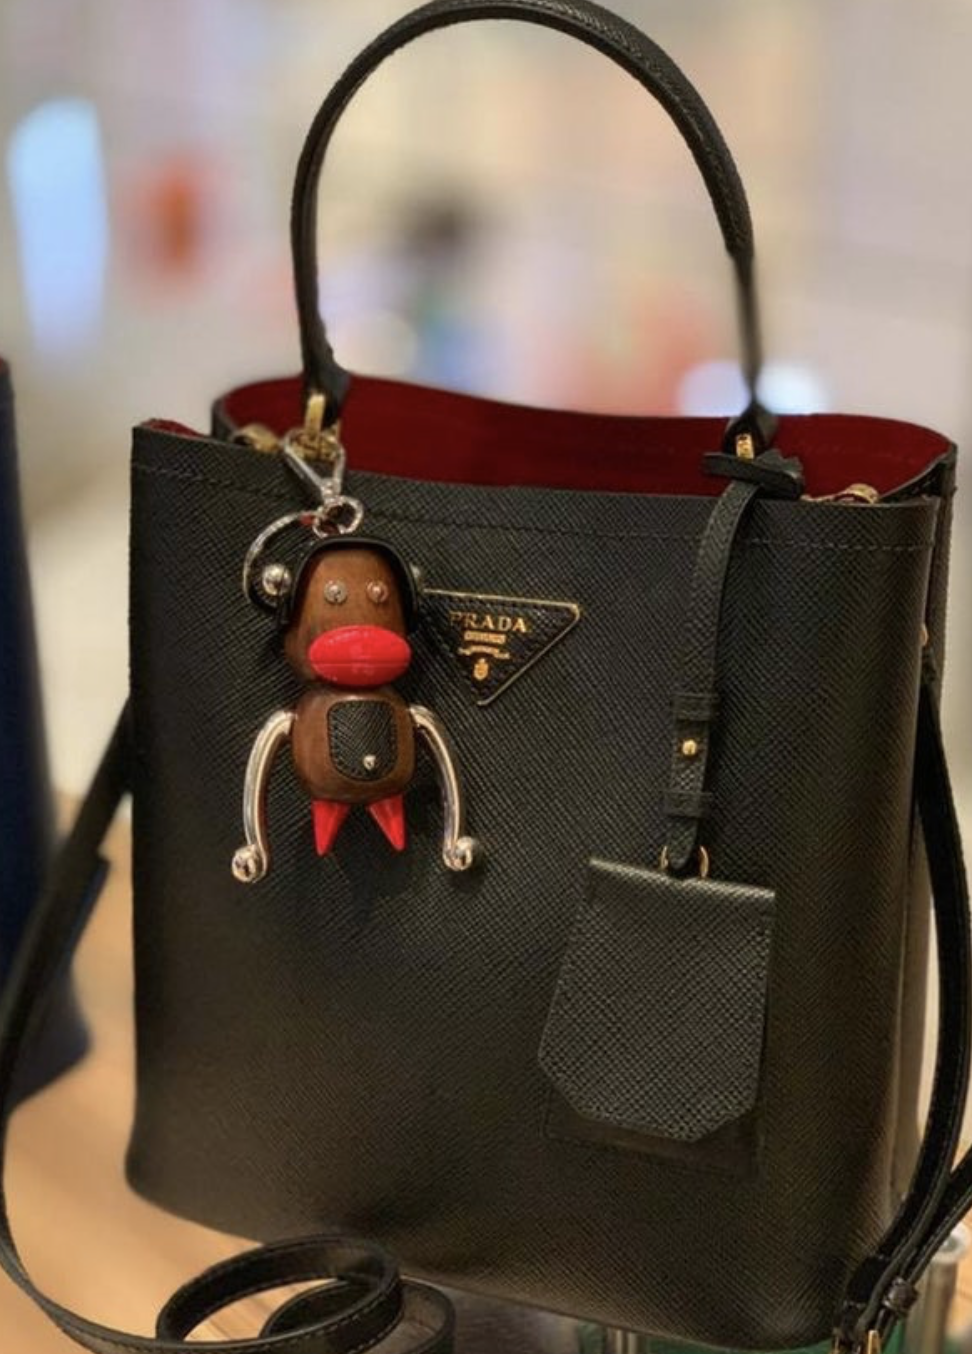 d1675cff75 Prada came under fire in December of 2018 after creating a monkey keychain  that referenced stereotypical black features in a derogatory manner.